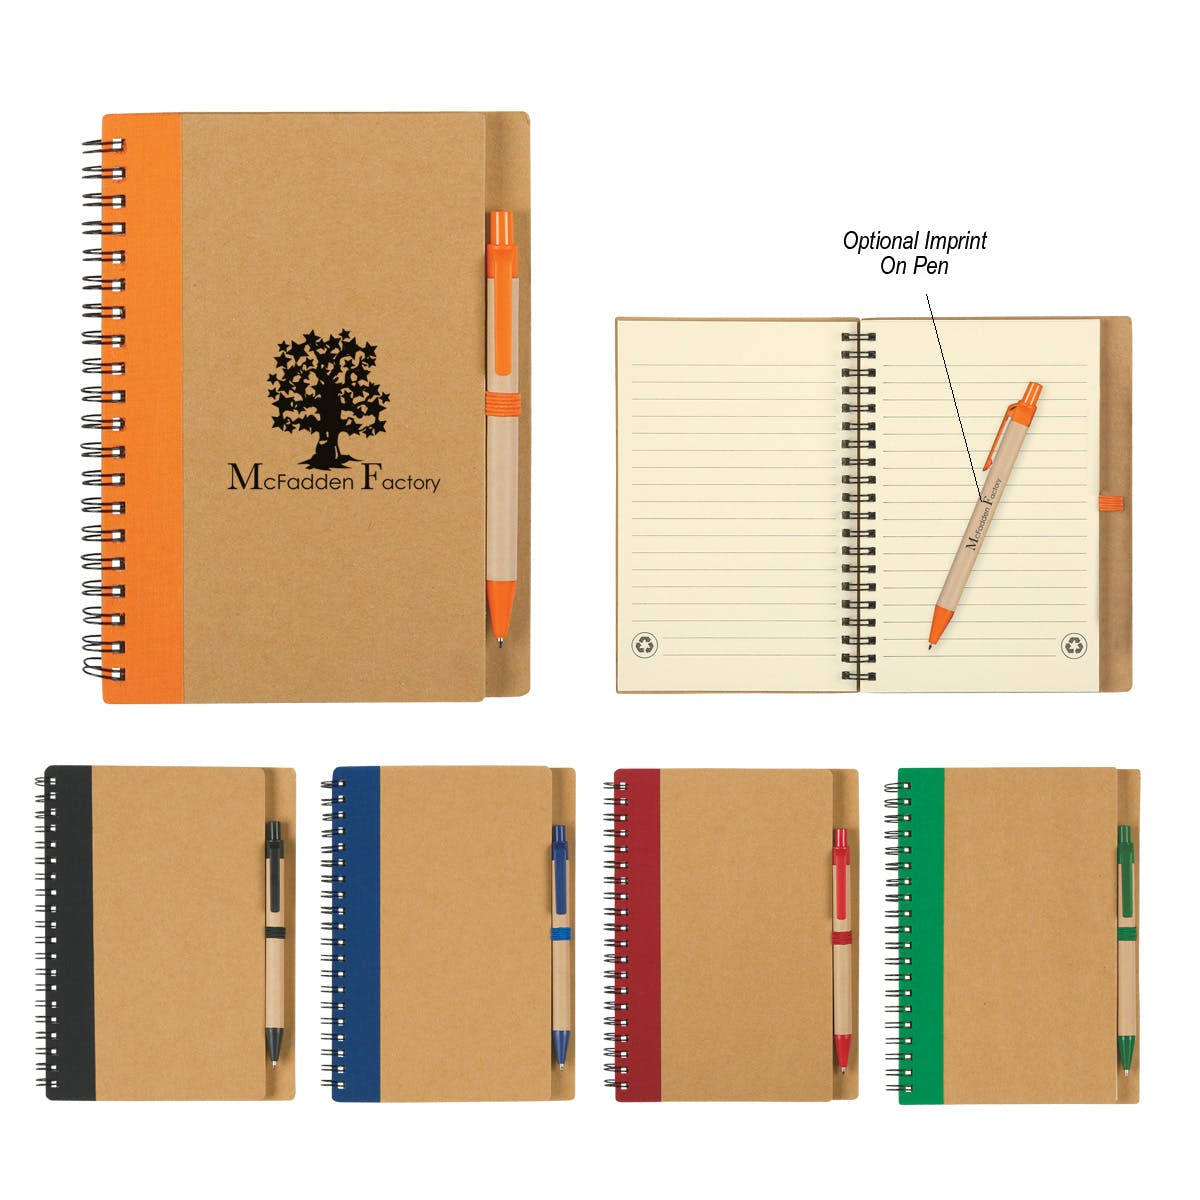 Spiral Notebook & Pen (Item # DGFHS-IUIRT) Recycled and Eco Friendly Promotional Item sold by InkEasy